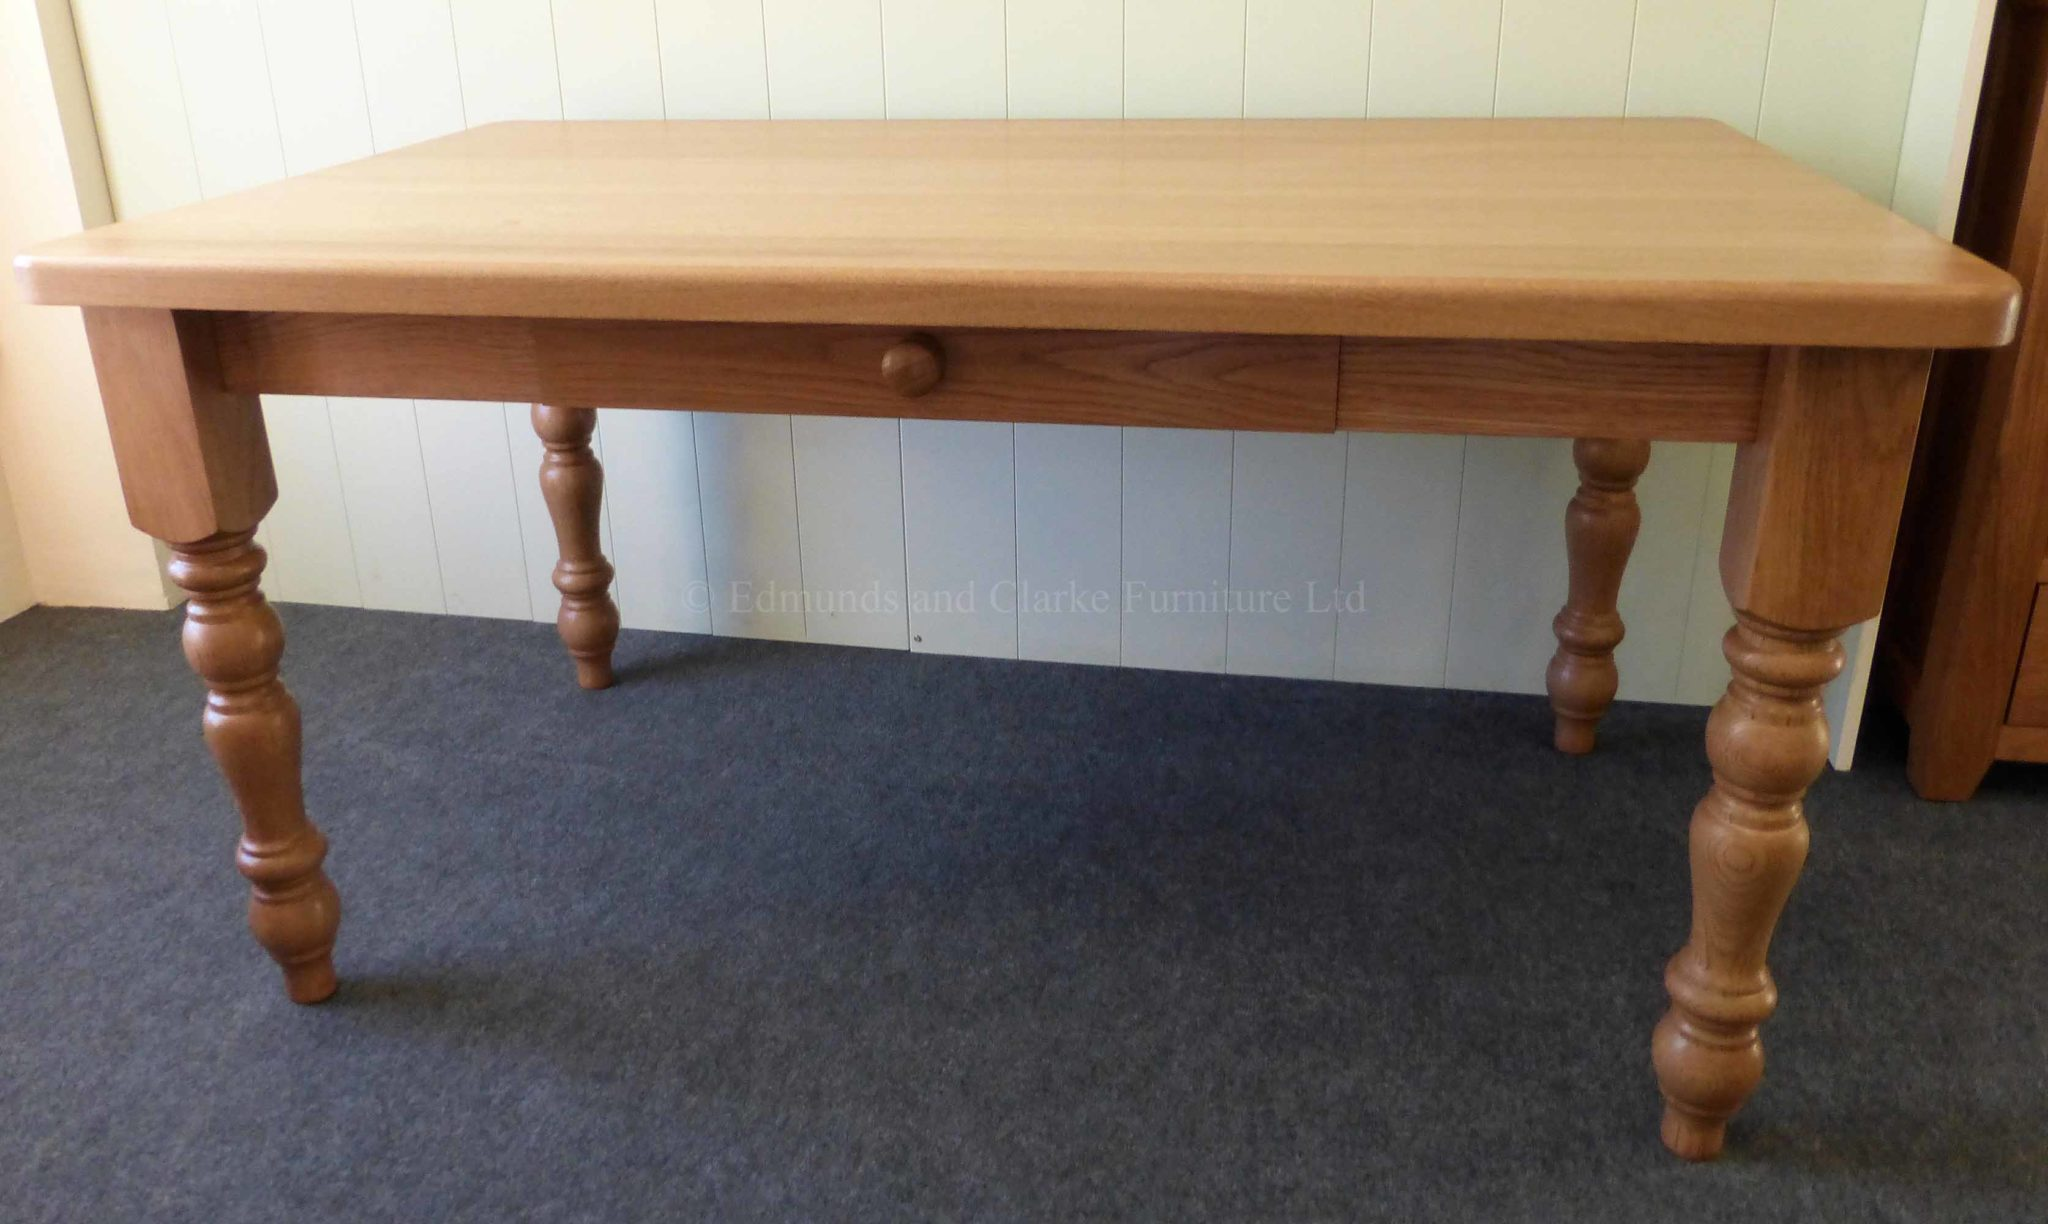 Edmunds solid oak farmhouse table with drawer in side